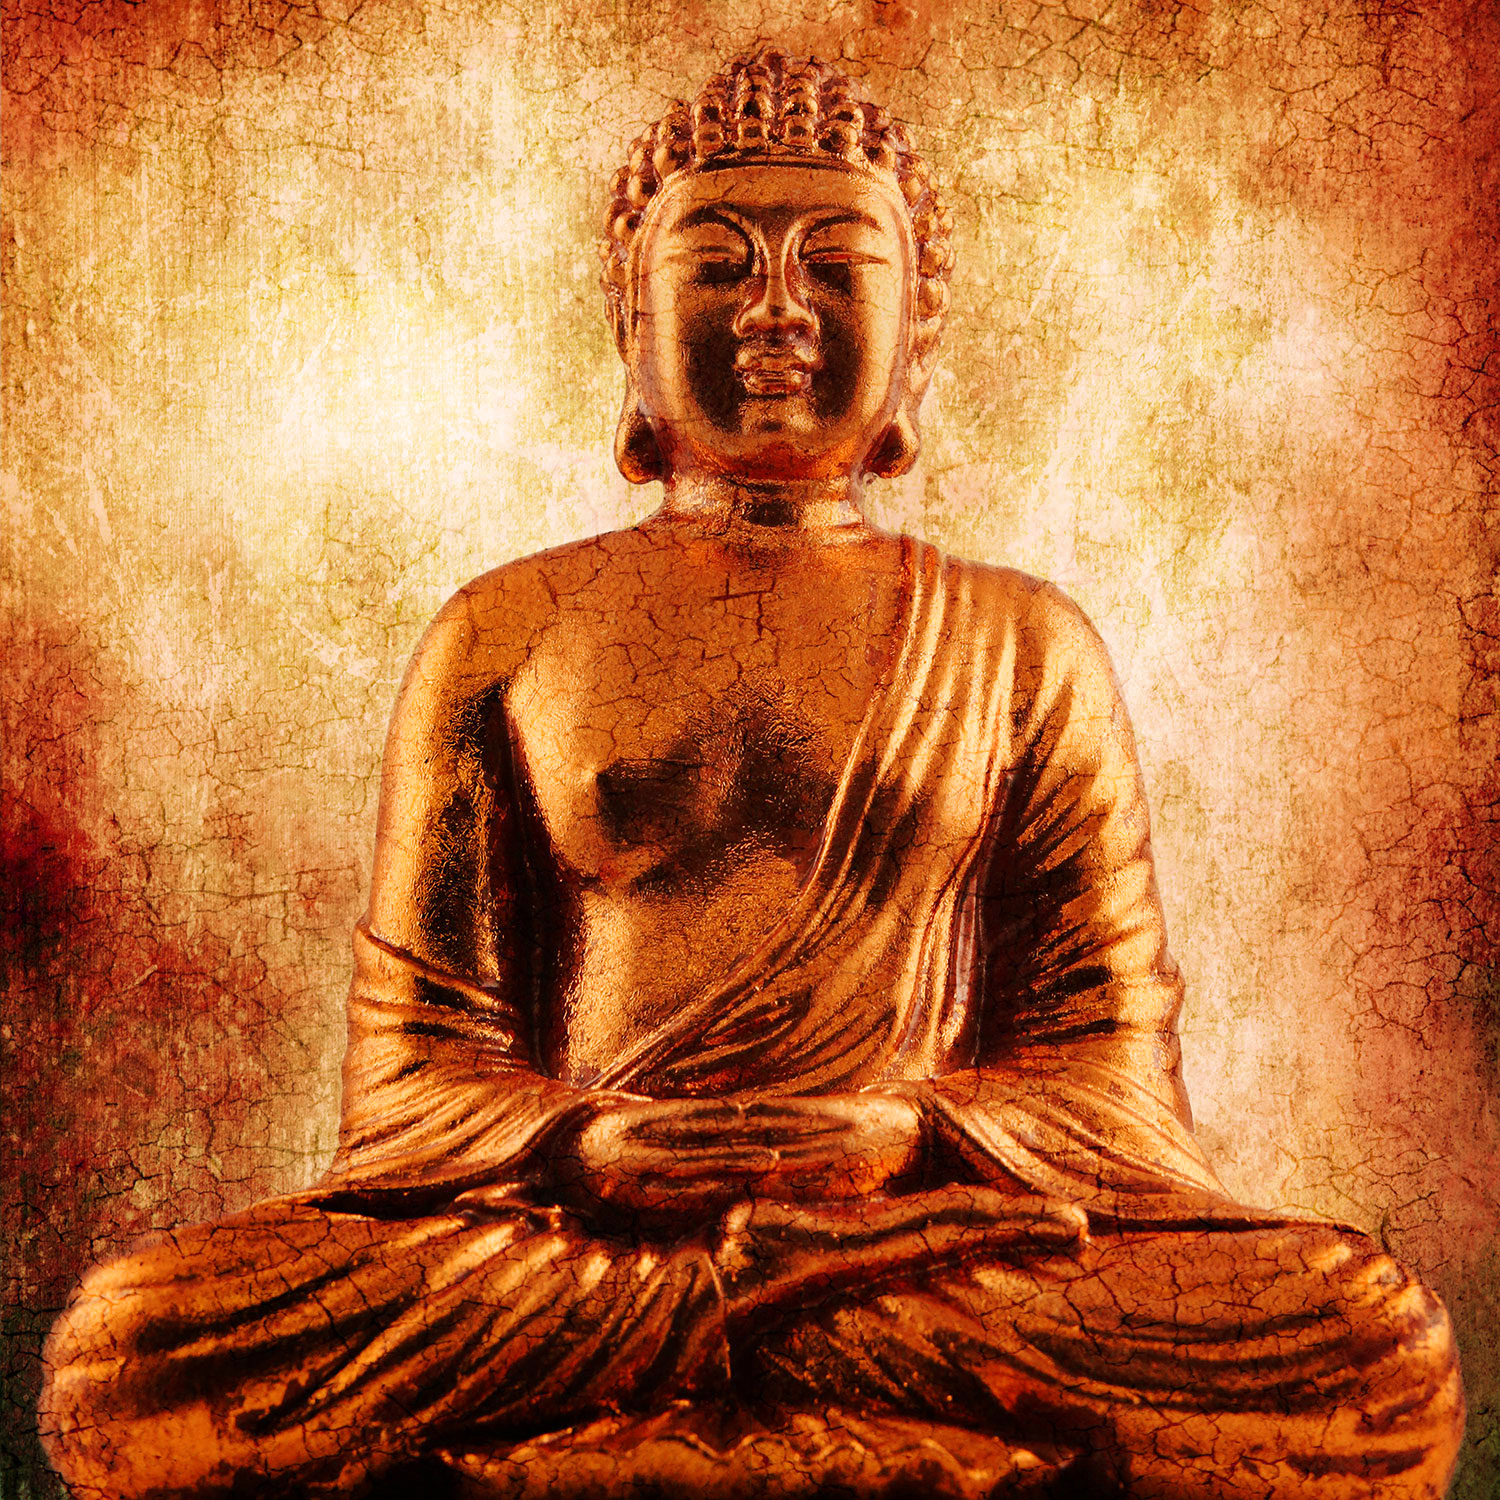 Gautama Buddha Wallpaper Photo Images Free HD